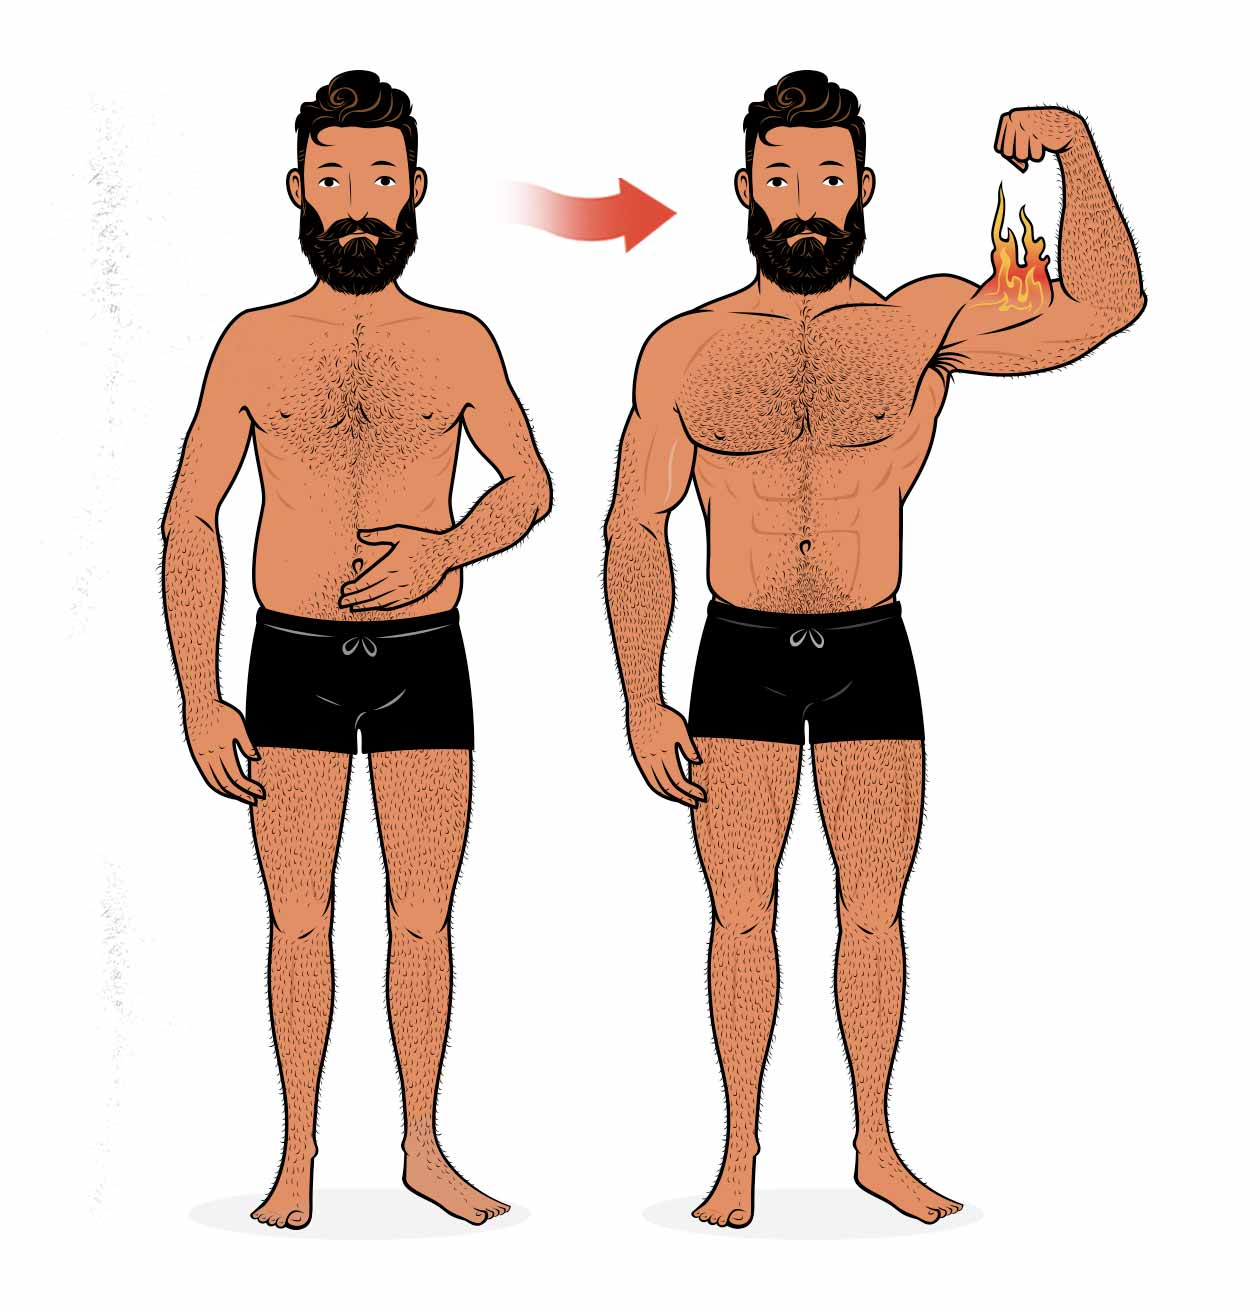 Illustration showing a skinny-fat man gaining muscle and losing belly fat.